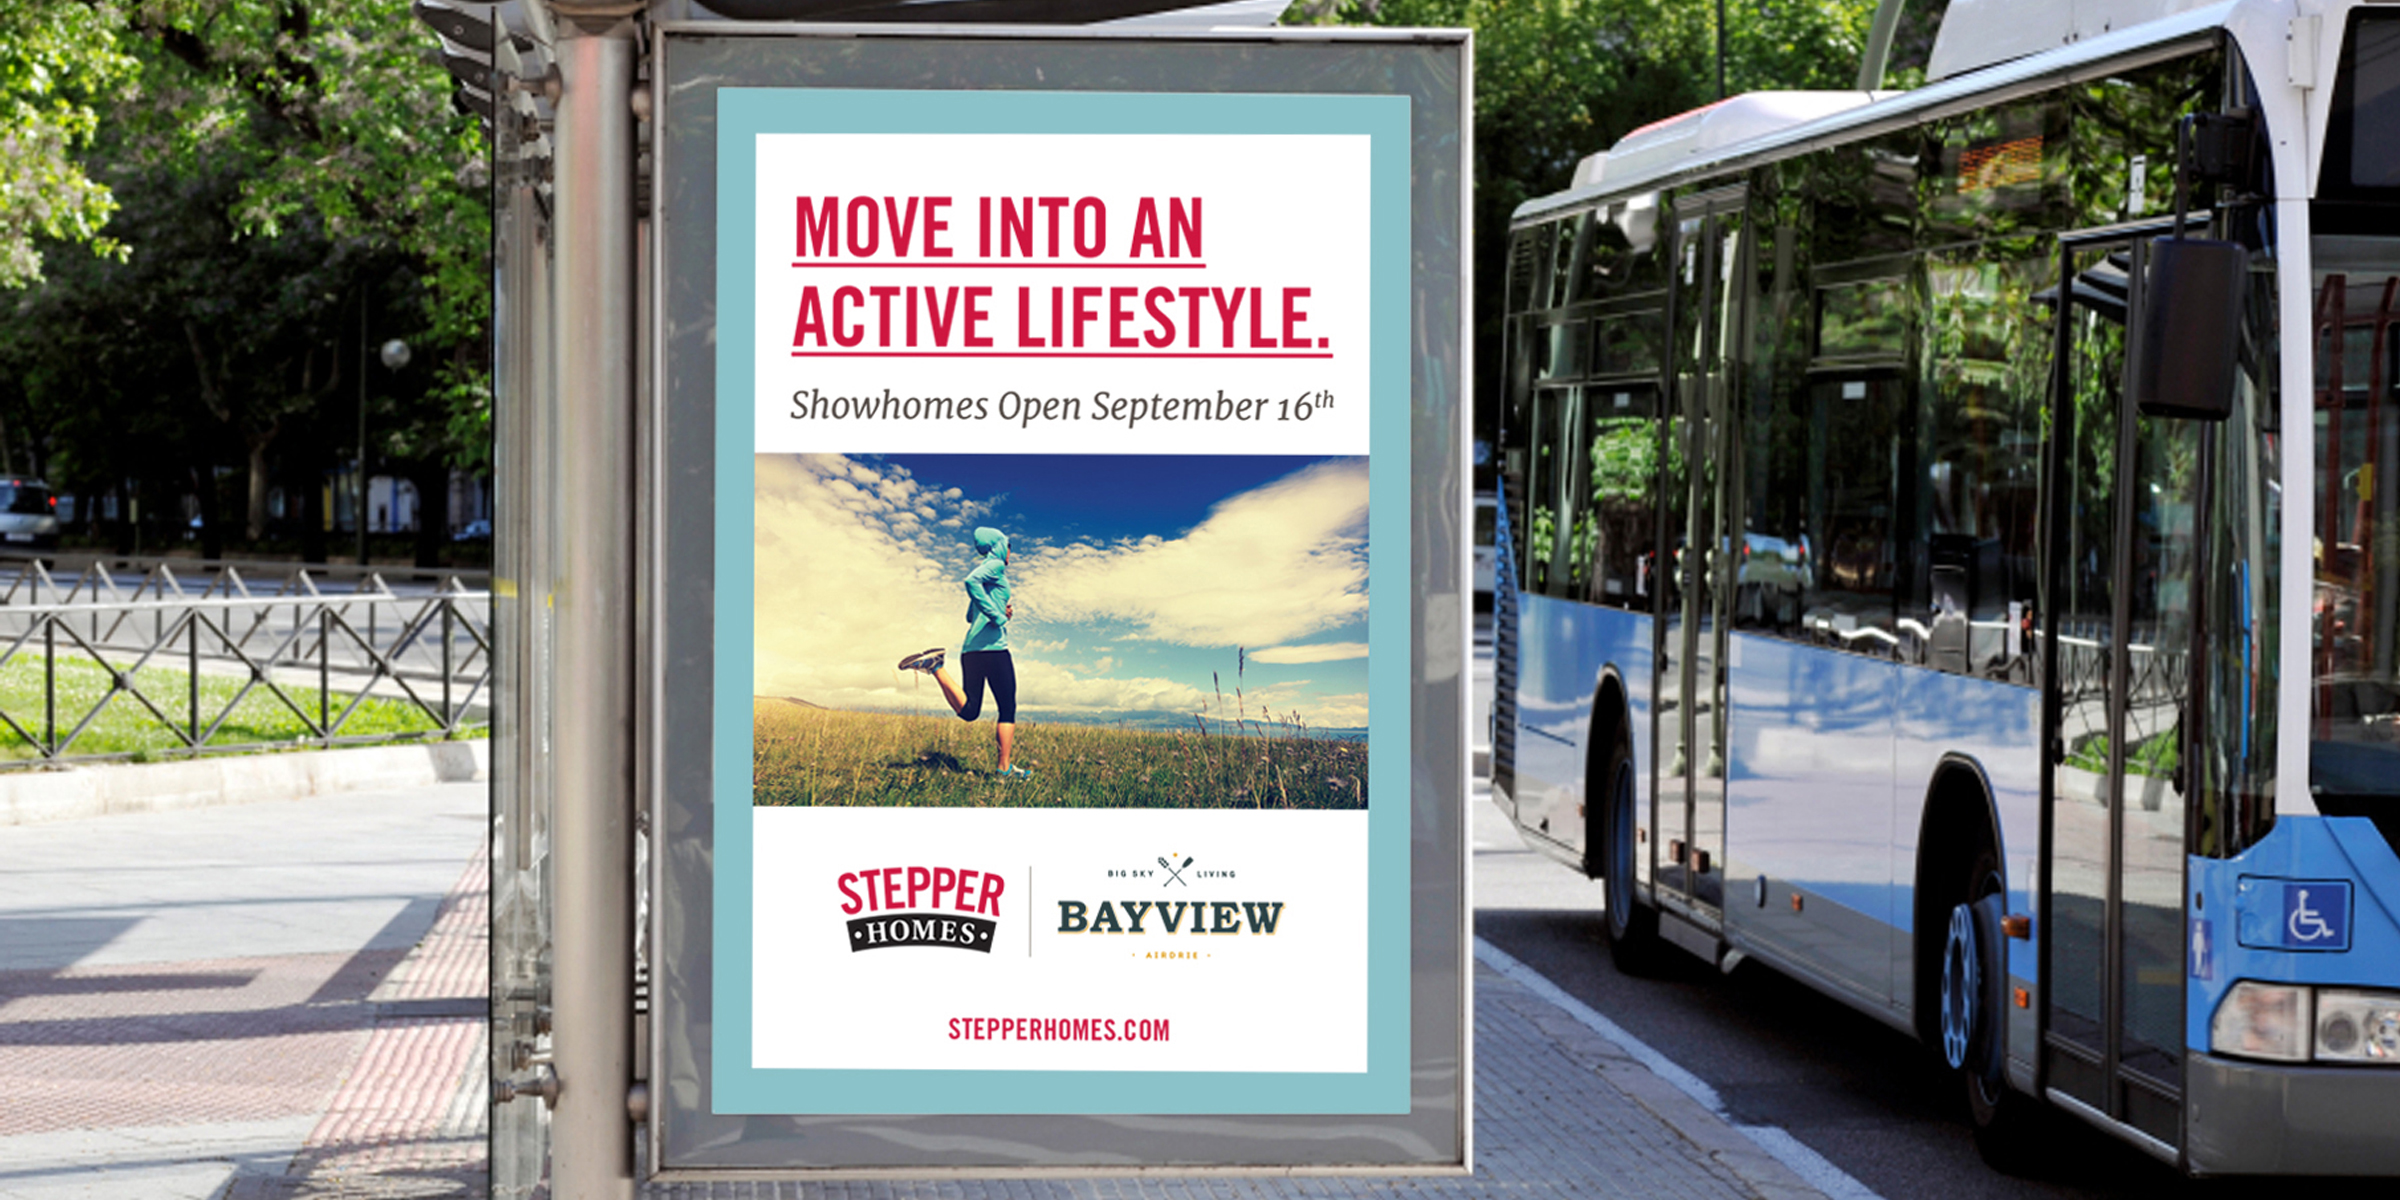 Stepper ad on a bus shelter